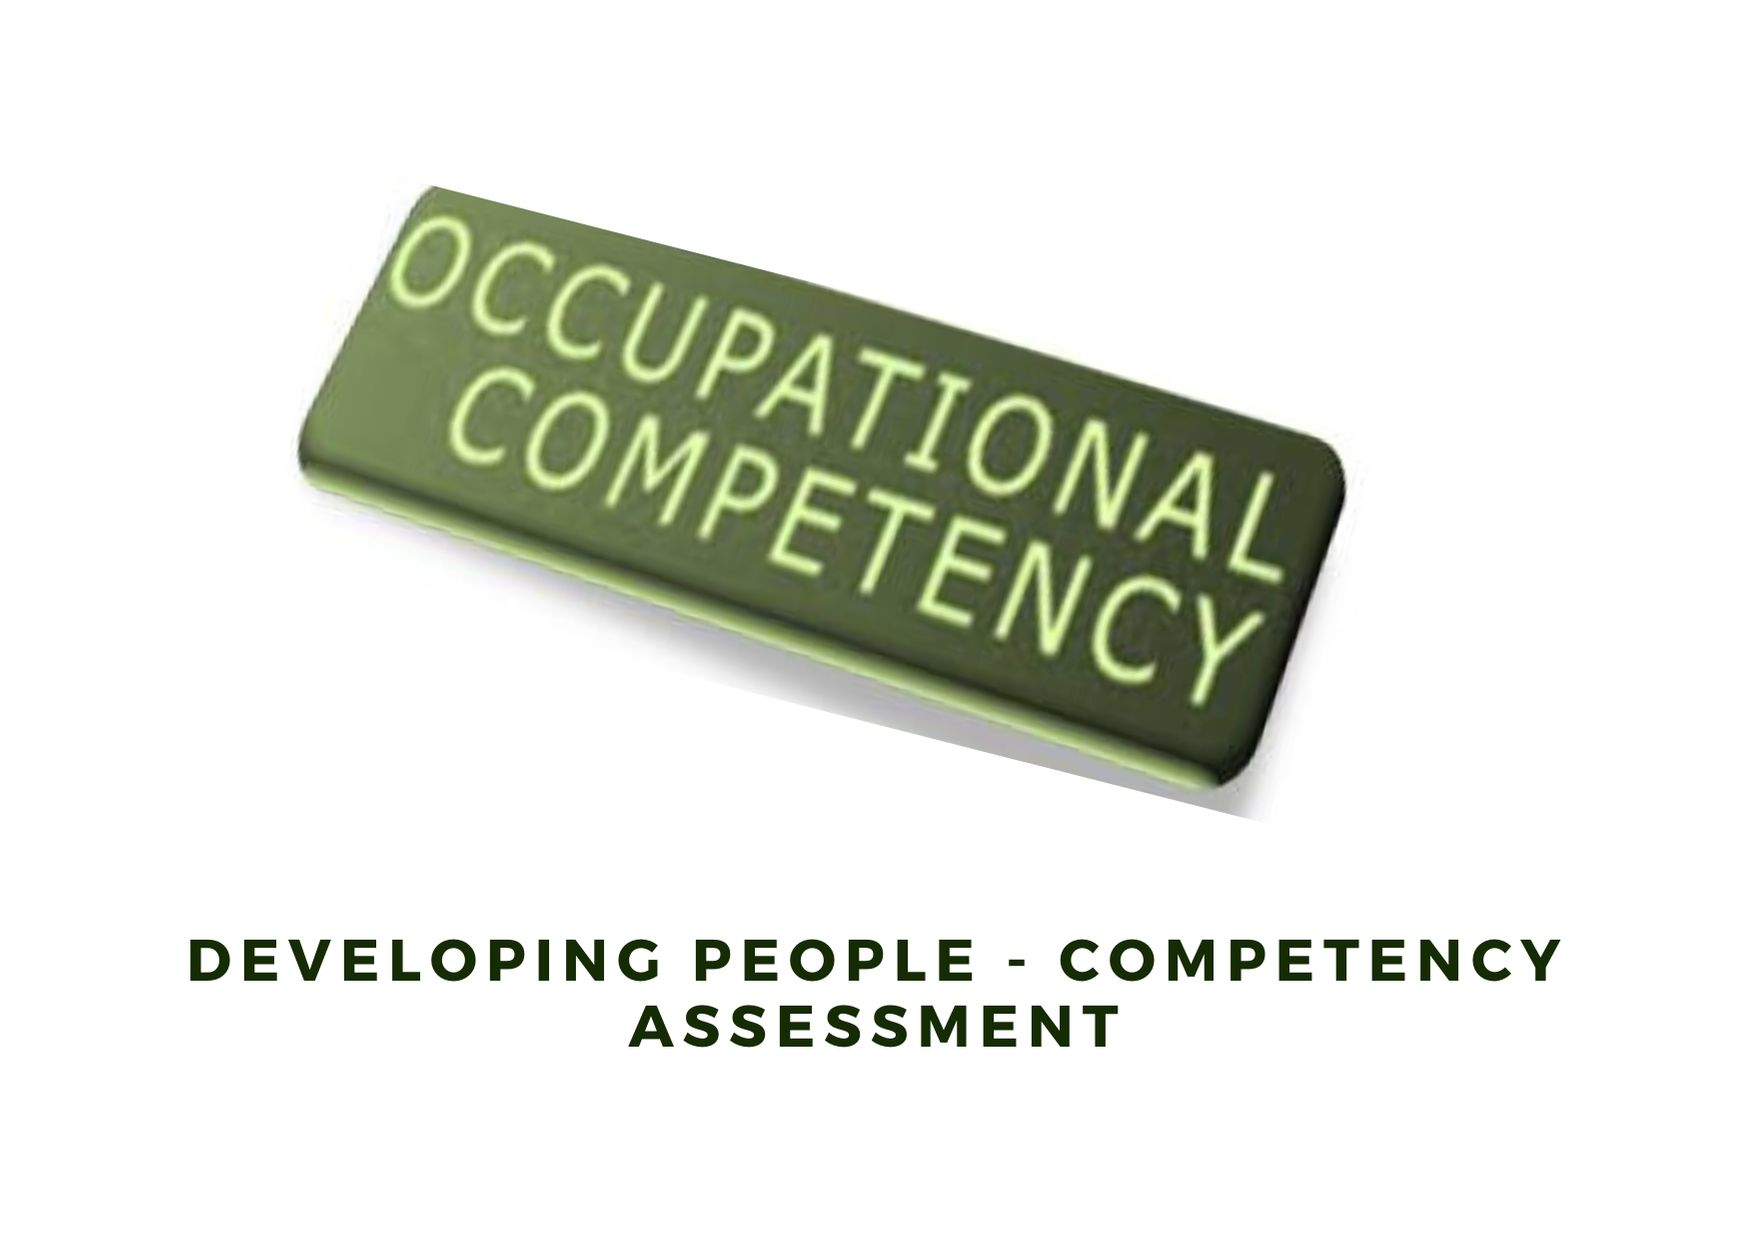 Developing People Competency Assessment